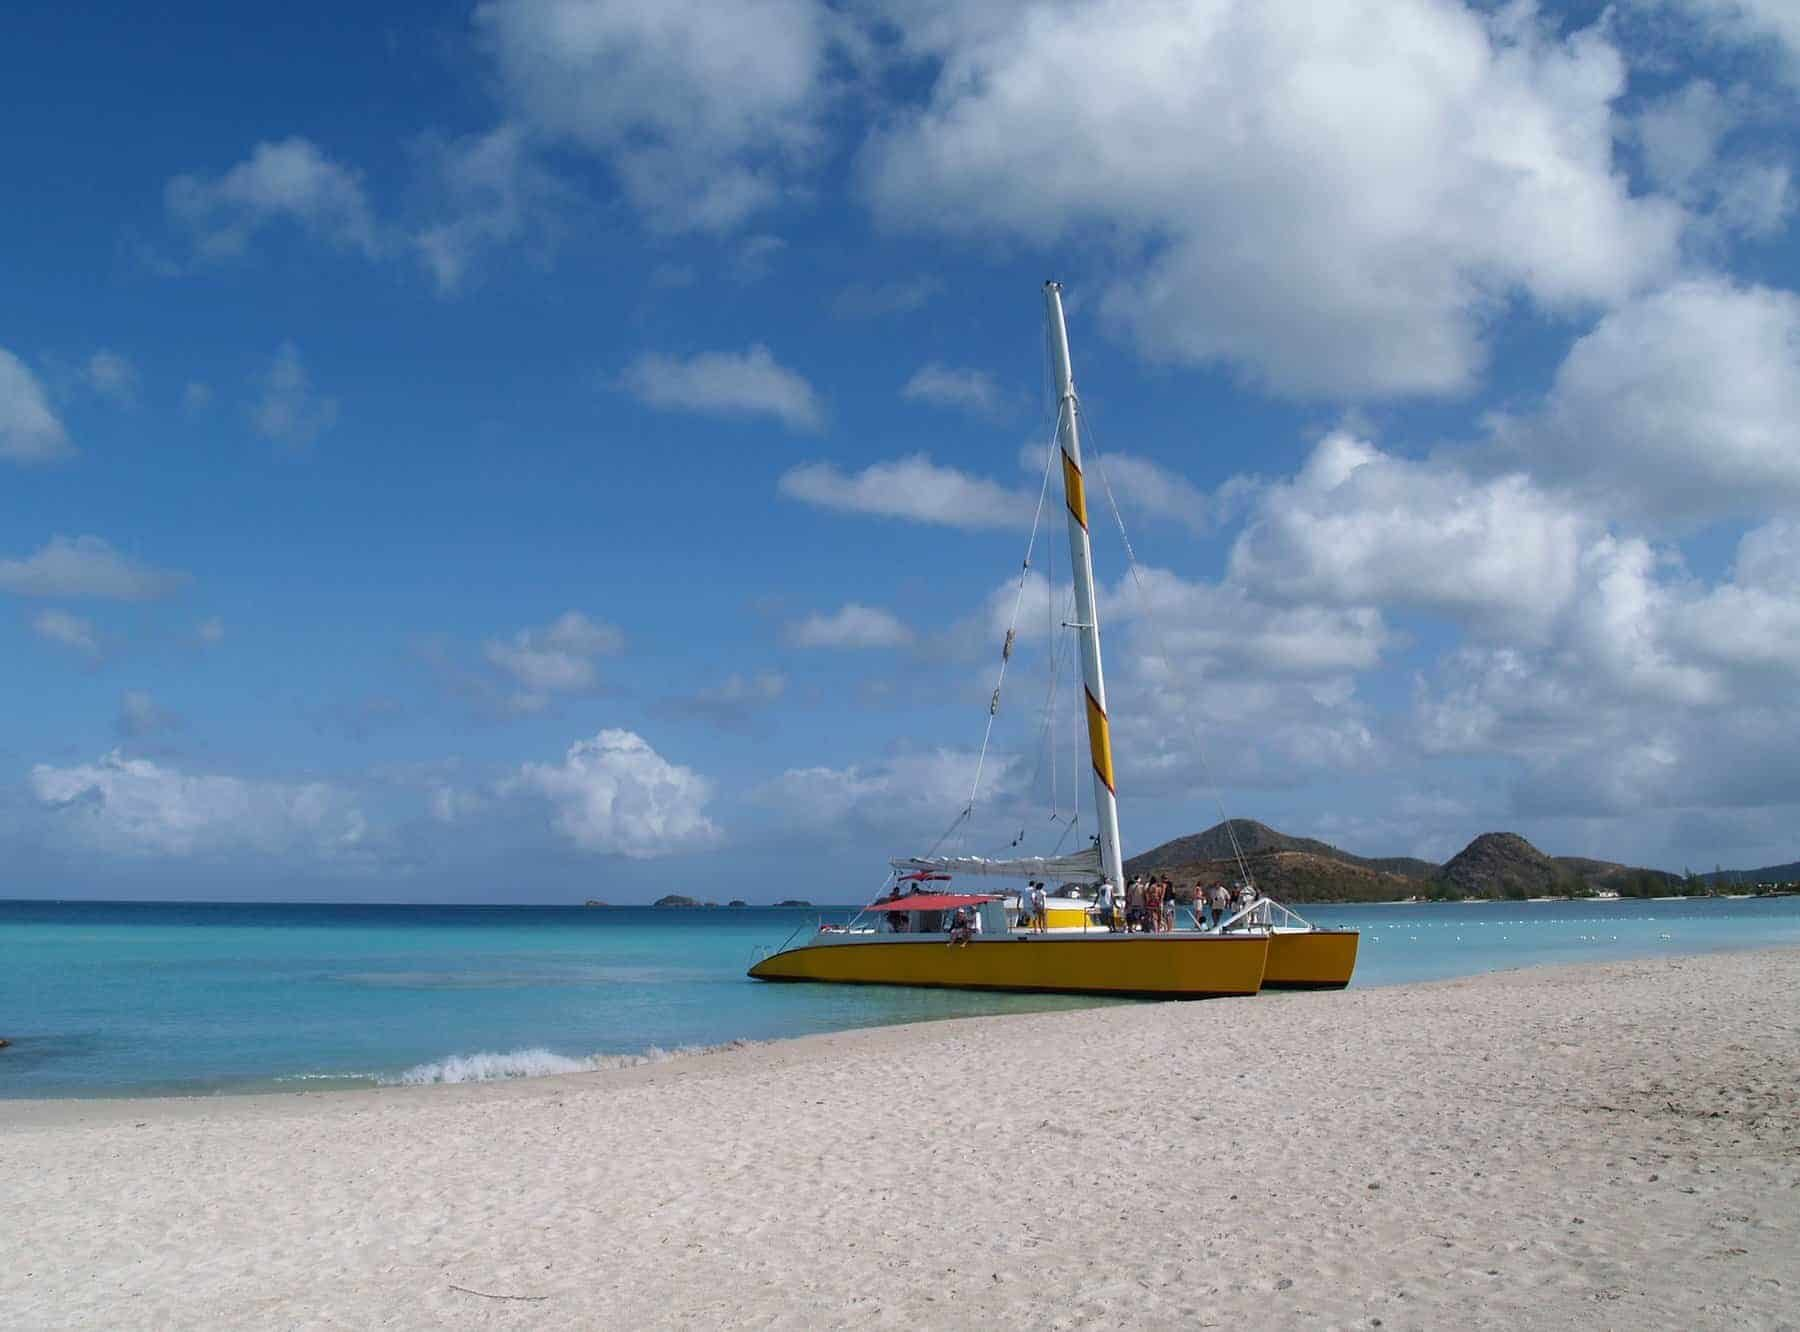 Catamaran at Jolly beach on